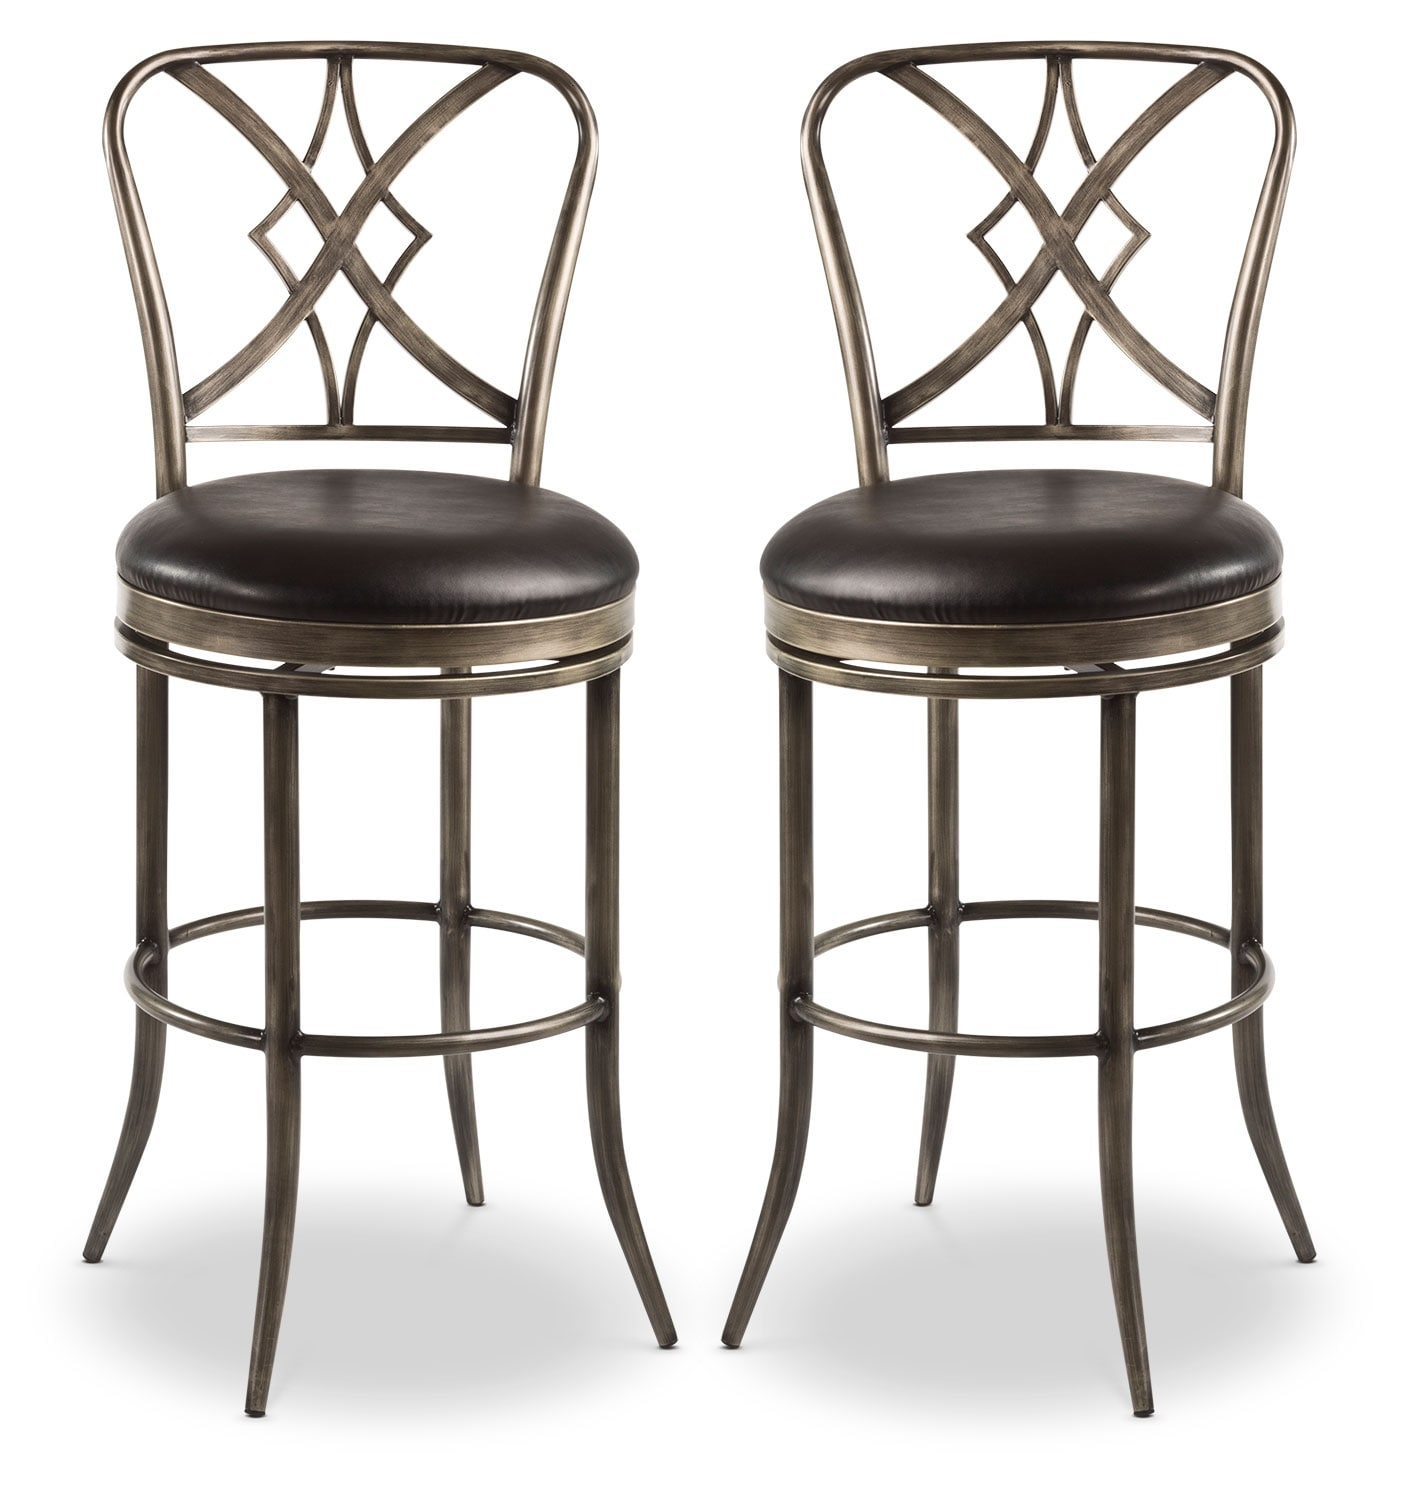 Jaqueline Counter Height Swivel Stool Set of 2 The Brick : 370747 from www.thebrick.com size 1403 x 1500 jpeg 361kB